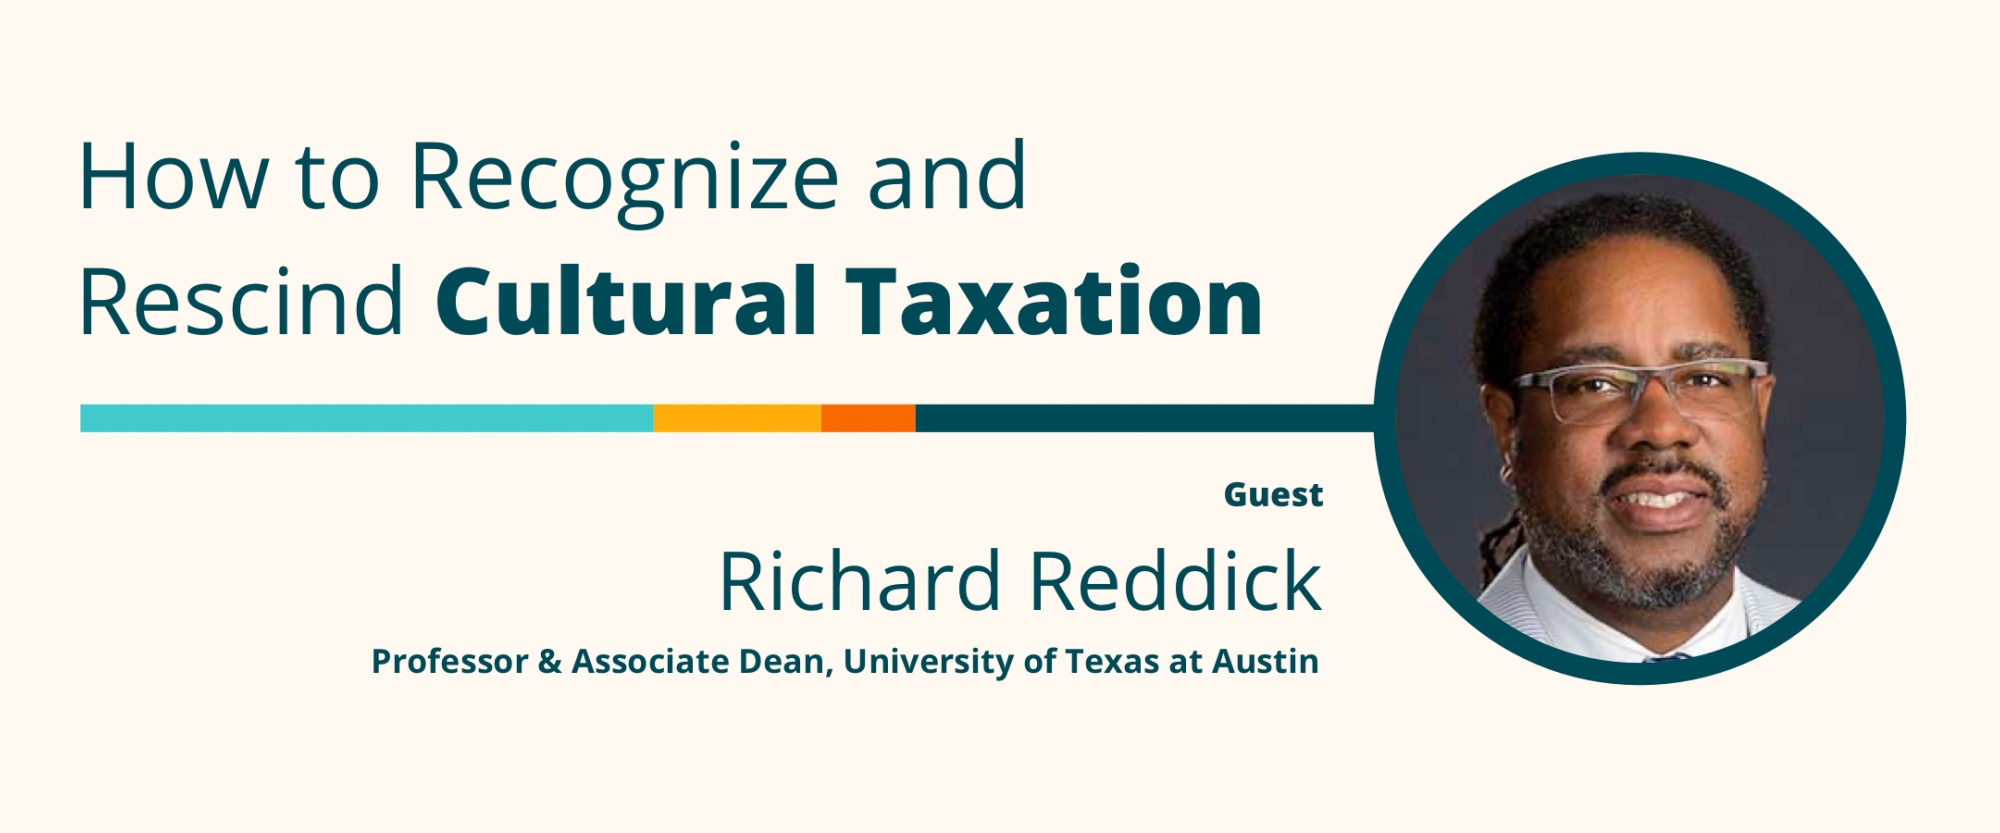 How to Recognize and Rescind Cultural Taxation: A Conversation With Richard Reddick, Professor and Associate Dean, University of Texas at Austin